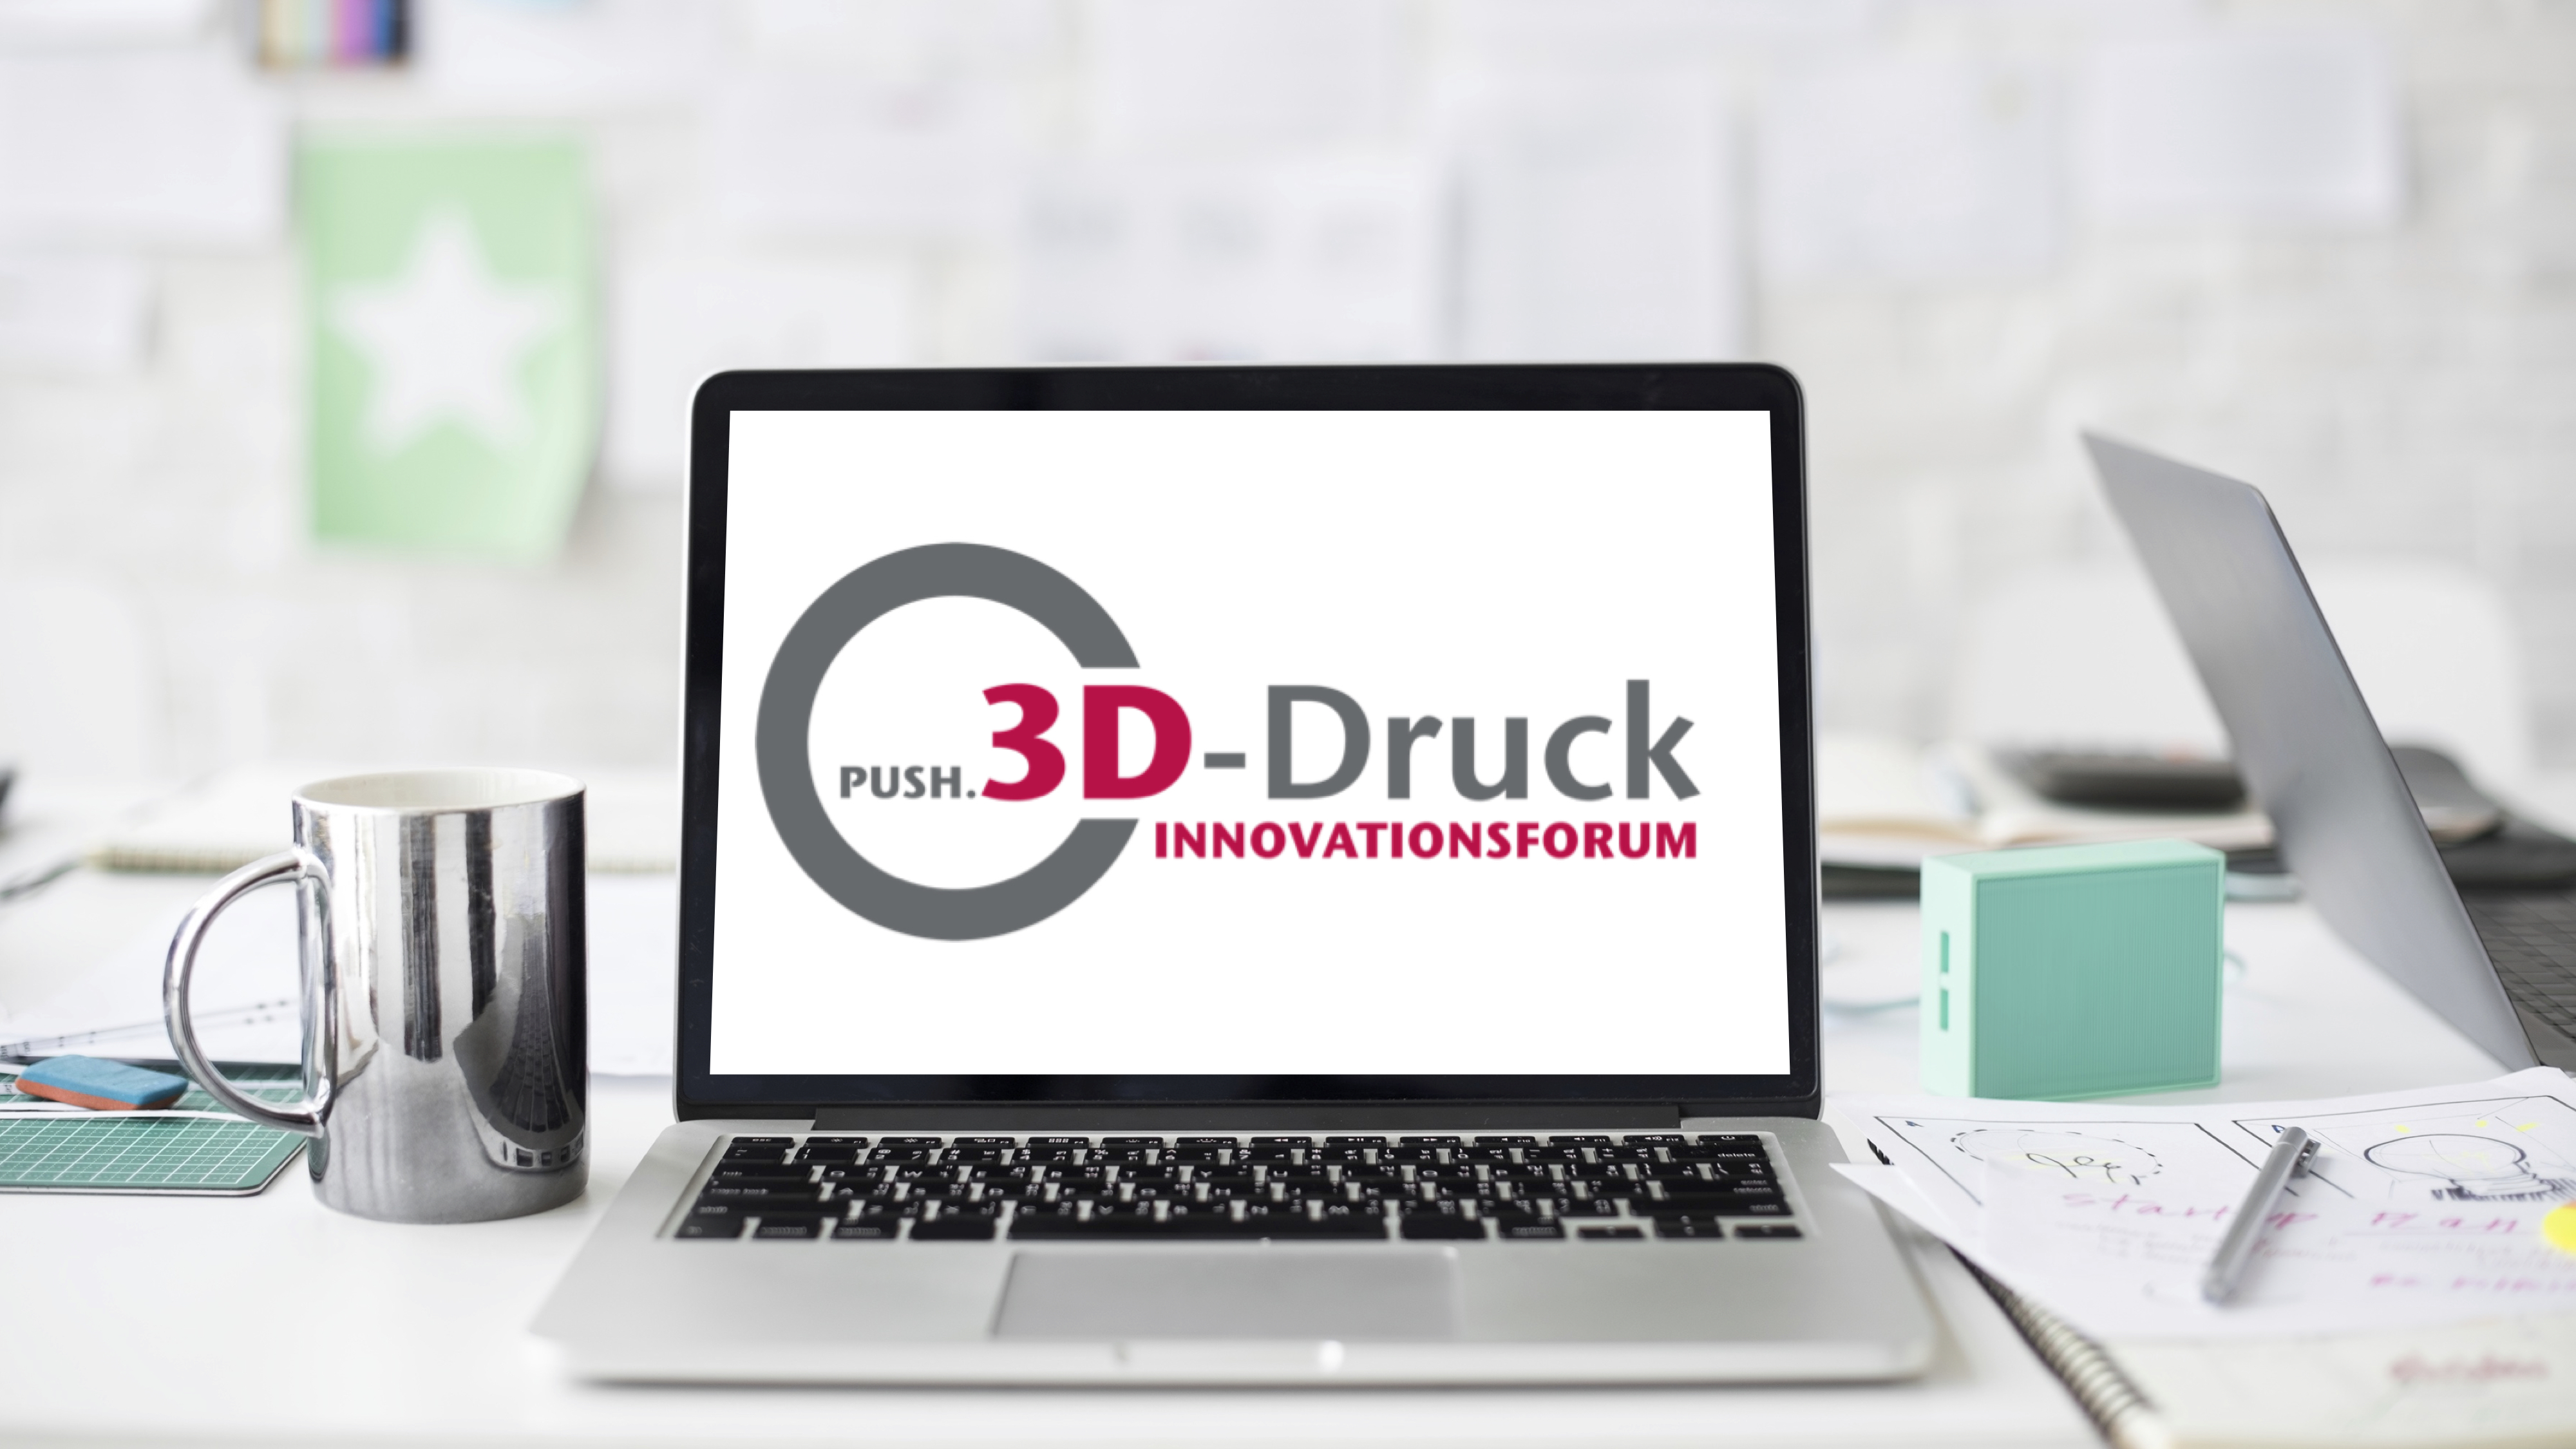 Innovationsforum PUSH.3D-Druck